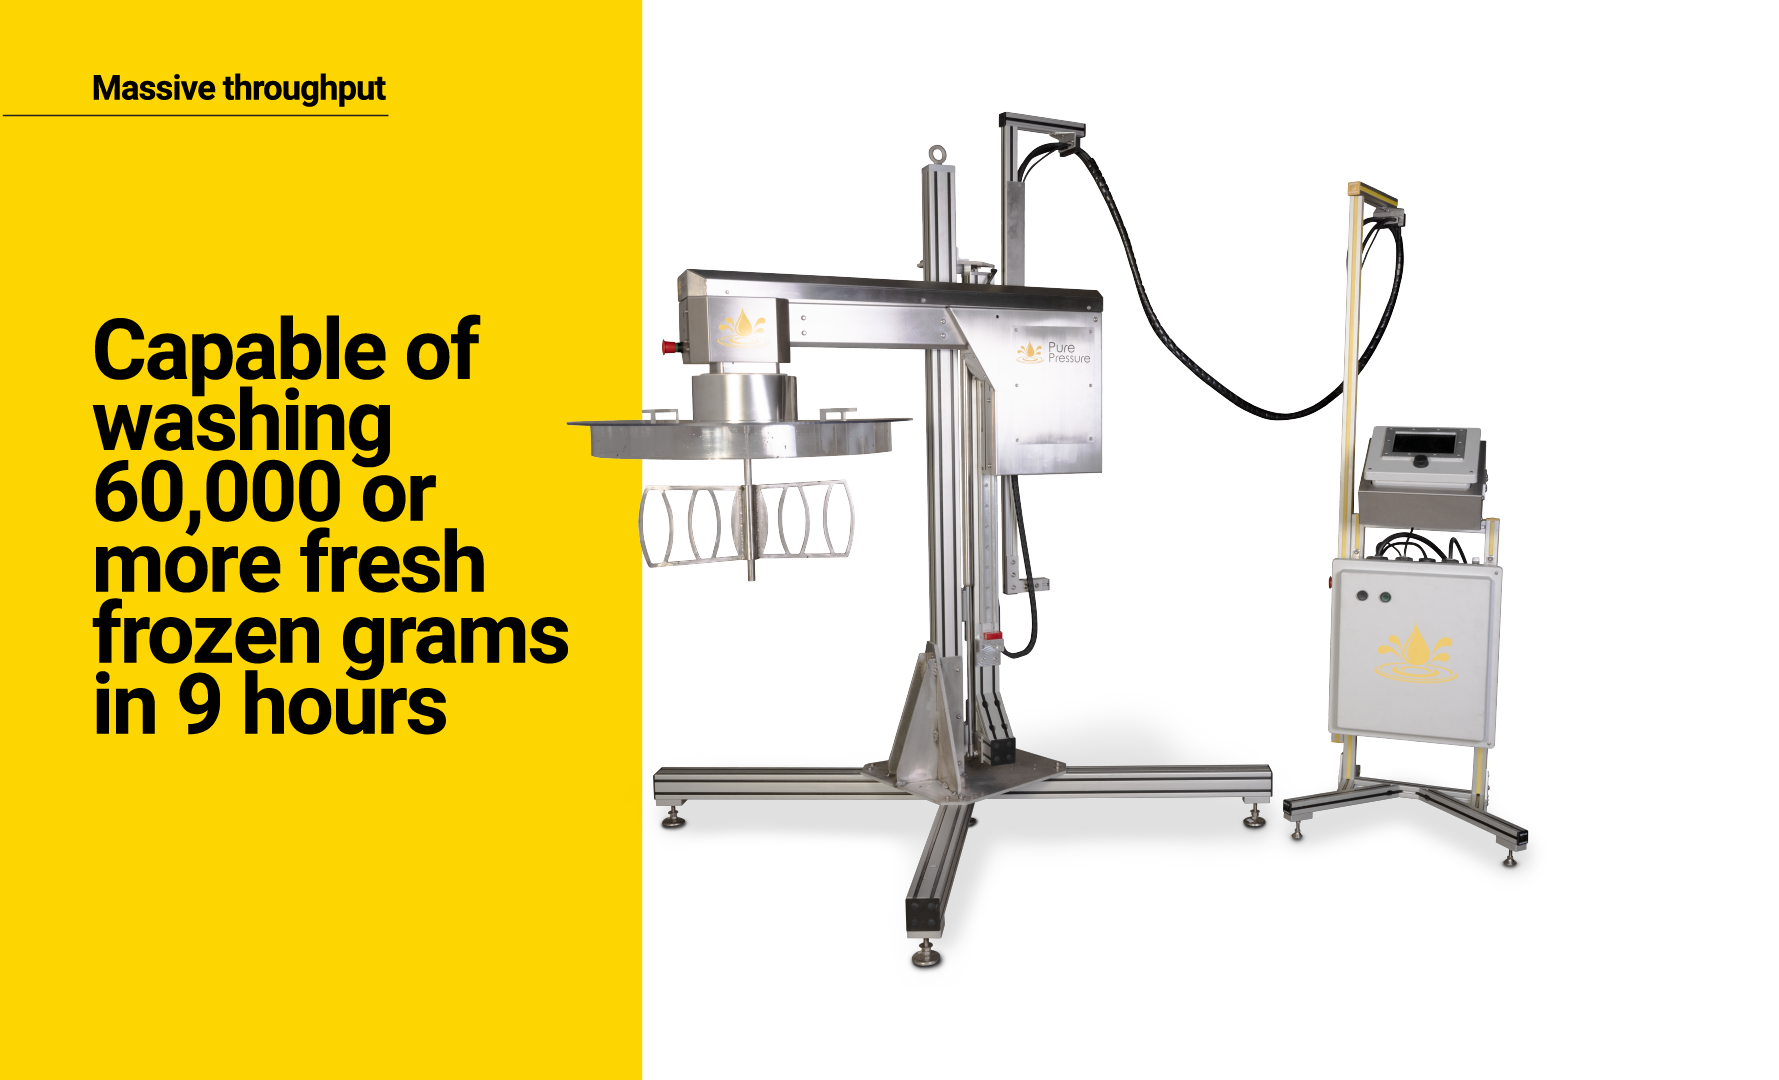 PurePressure Axis Trichome Separator Wash 60,000 grams or more of Fresh Frozen in 9 hours